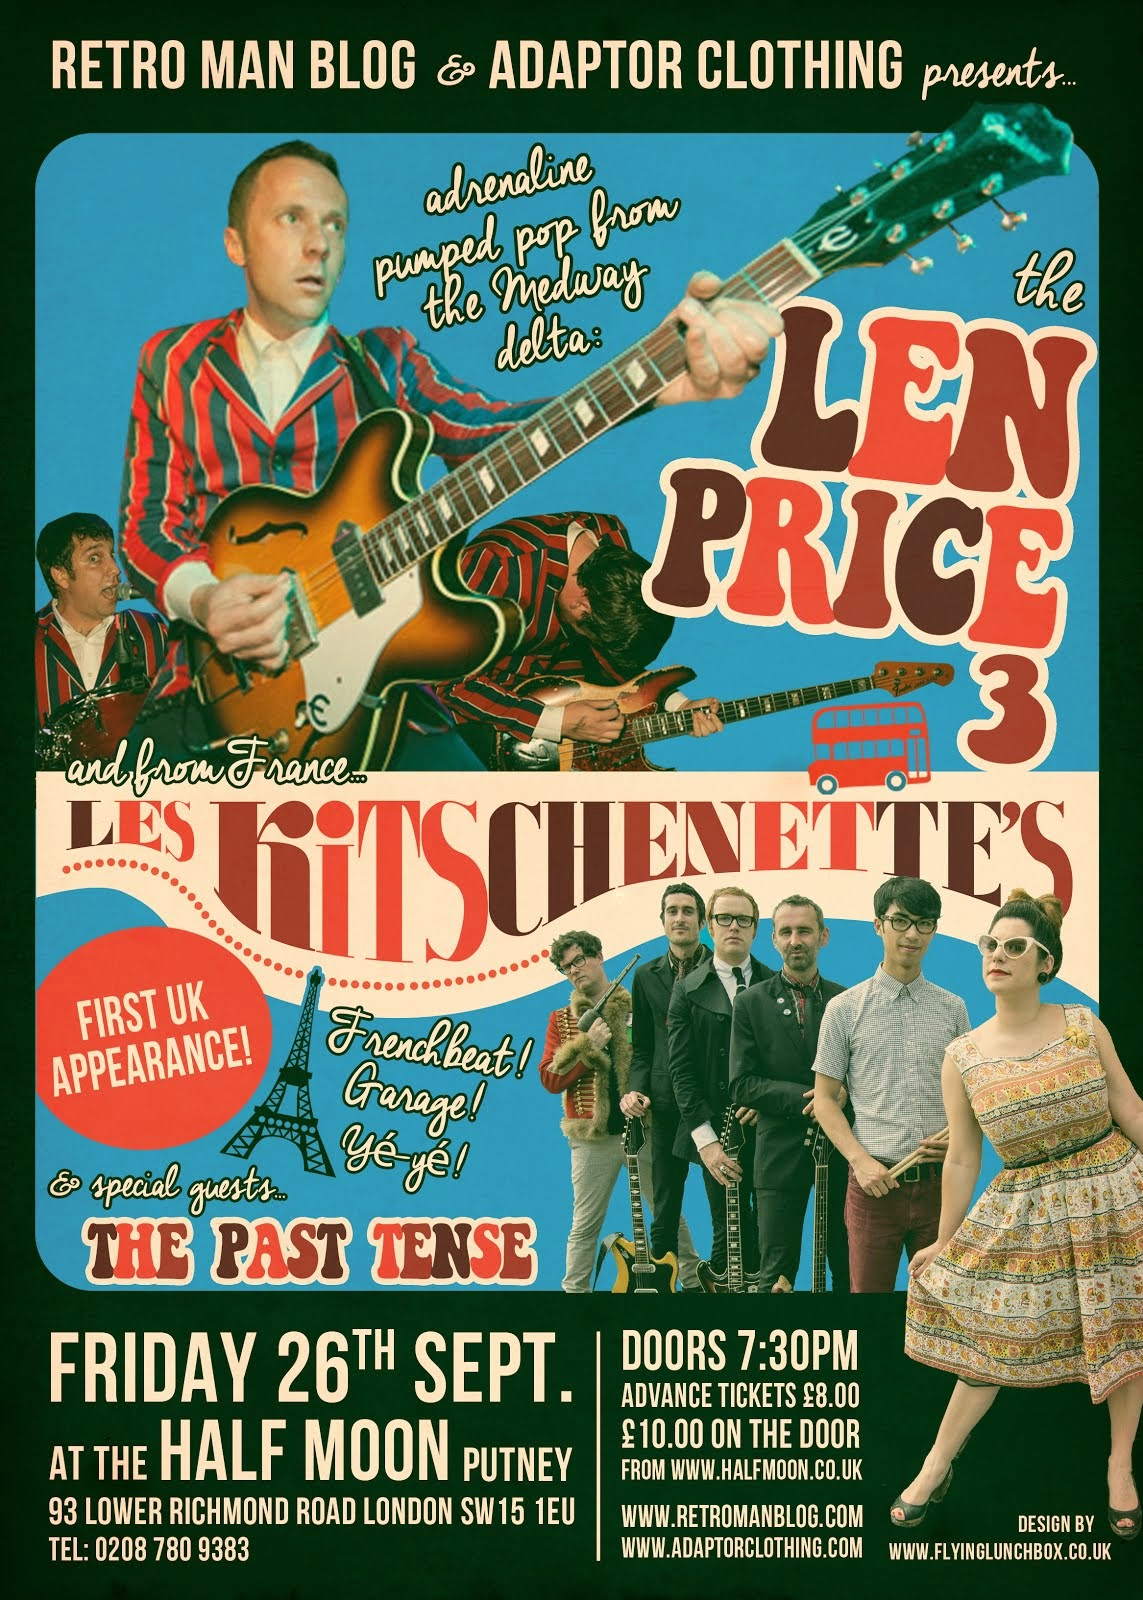 The Len Price 3 + Les Kitschenette's + The Past Tense at The Half Moon Putney